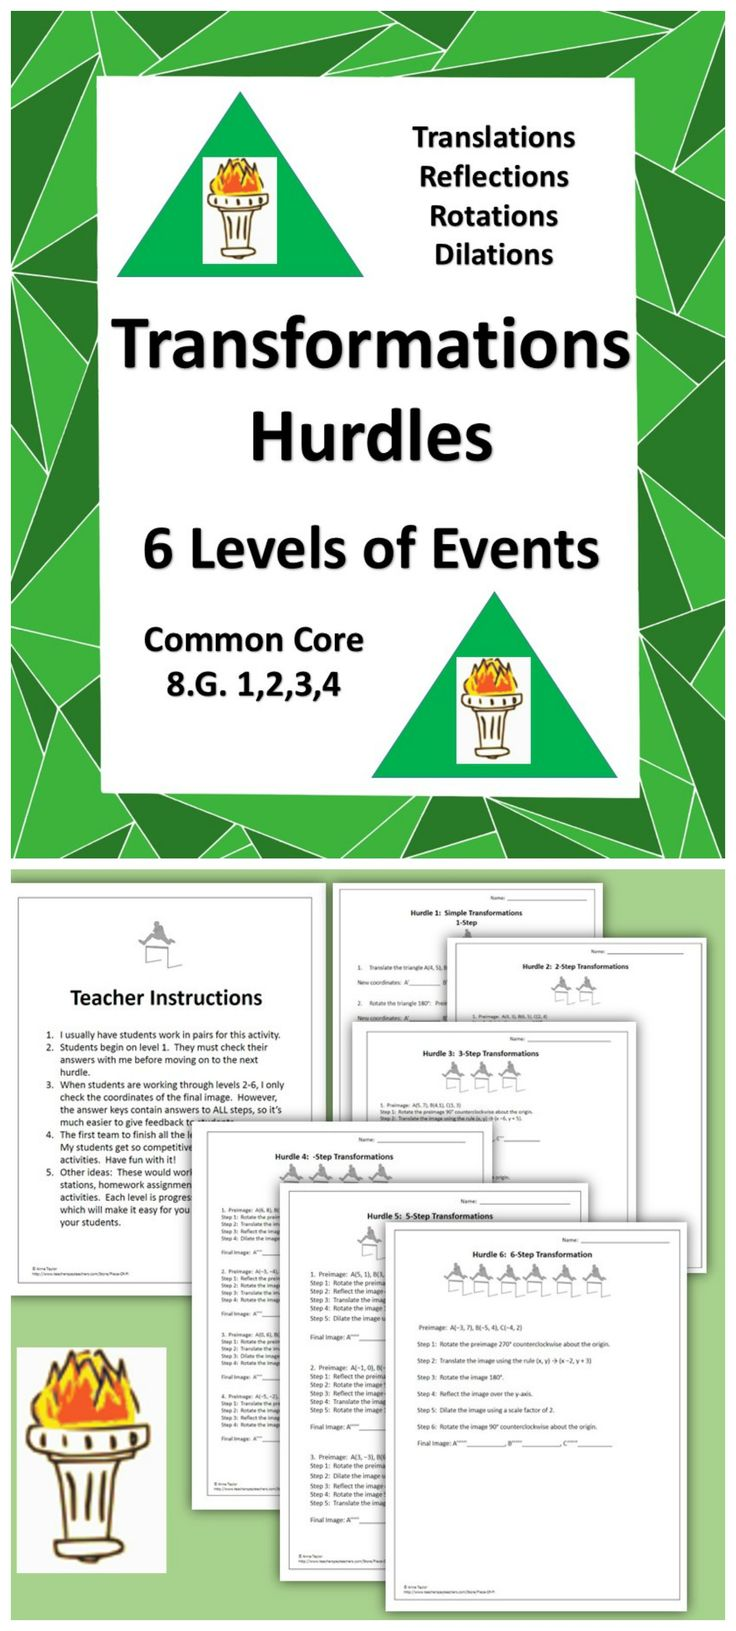 worksheet Combined Transformations Worksheet 54 best transformations images on pinterest teaching ideas high its the hurdles translations rotations reflections dilations common core 8